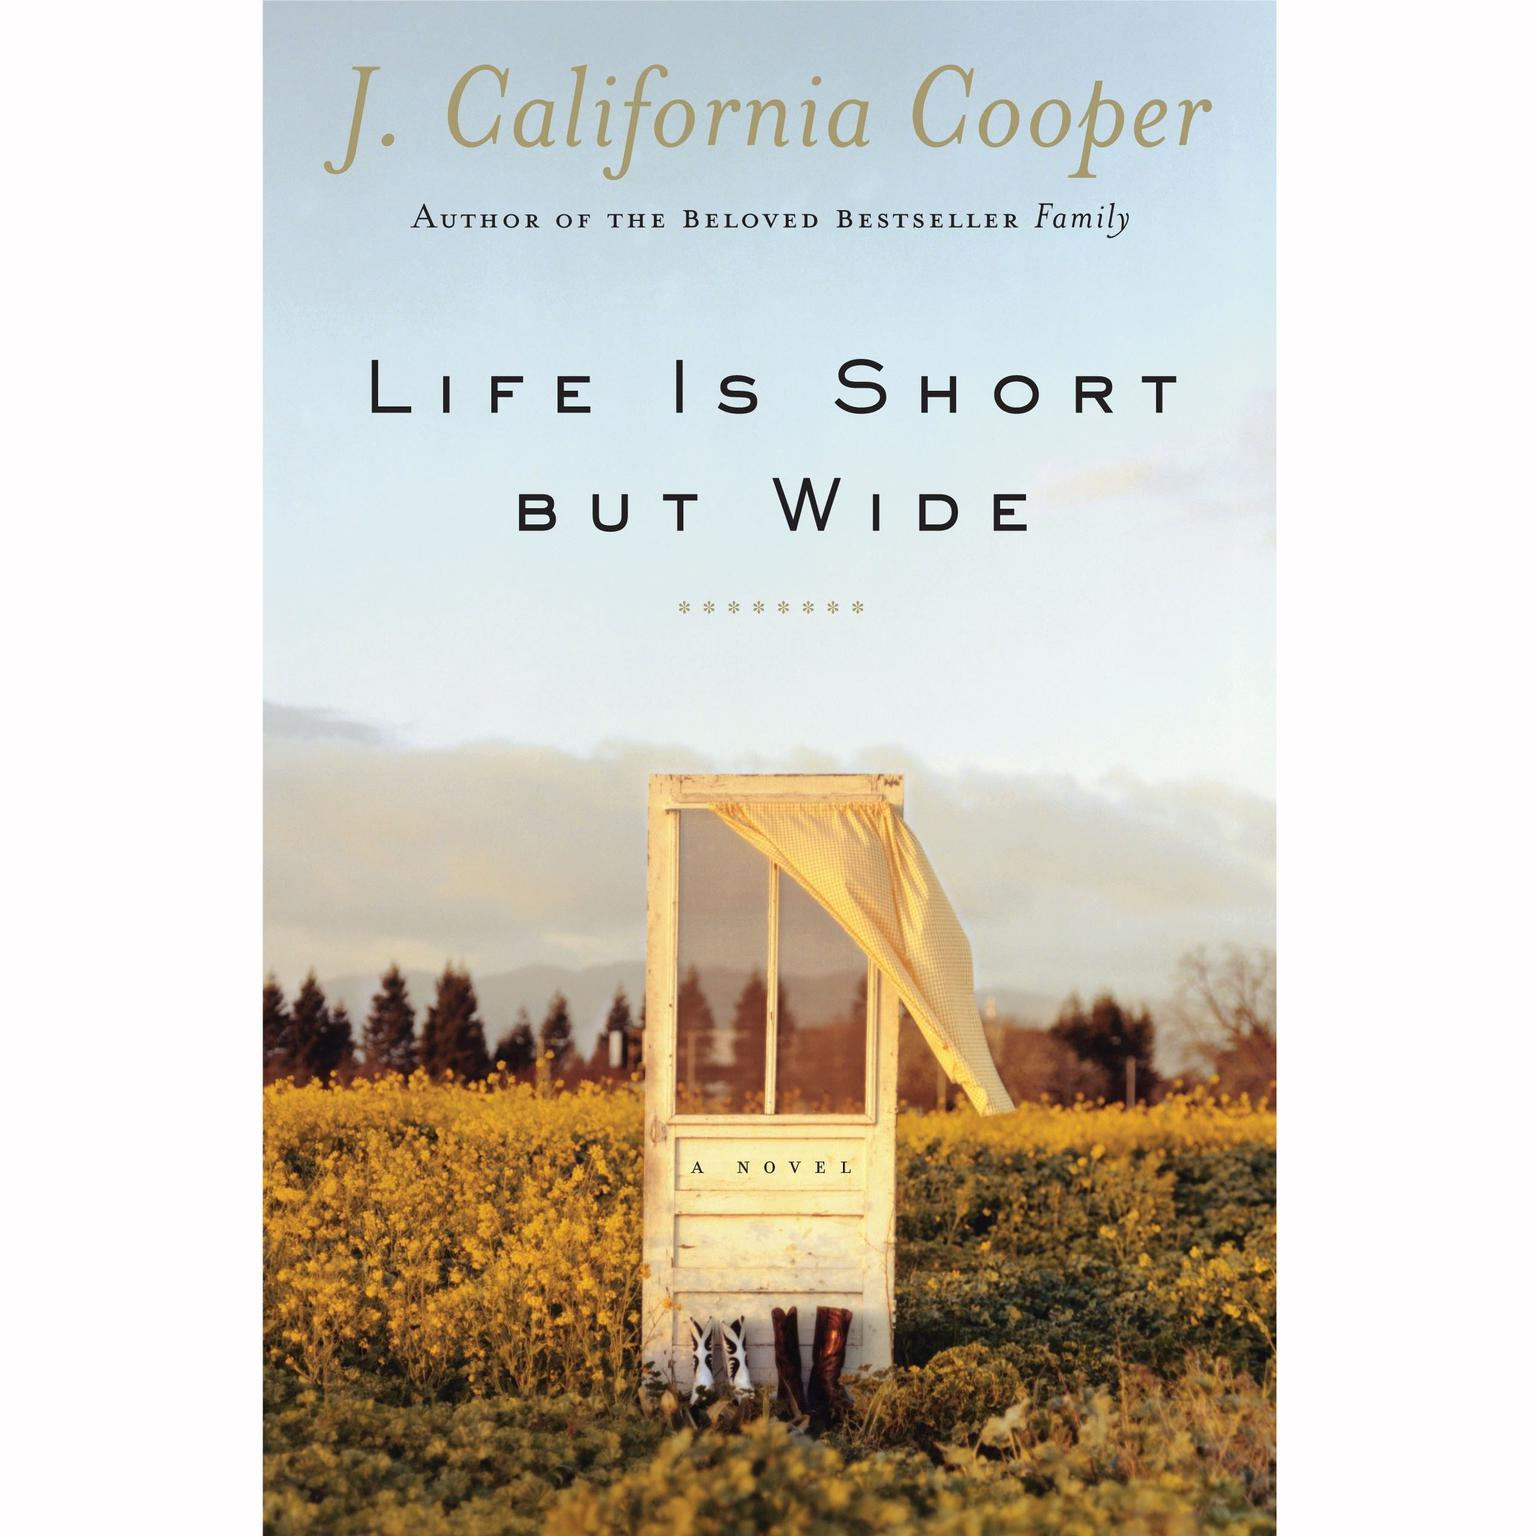 Printable Life is Short but Wide Audiobook Cover Art